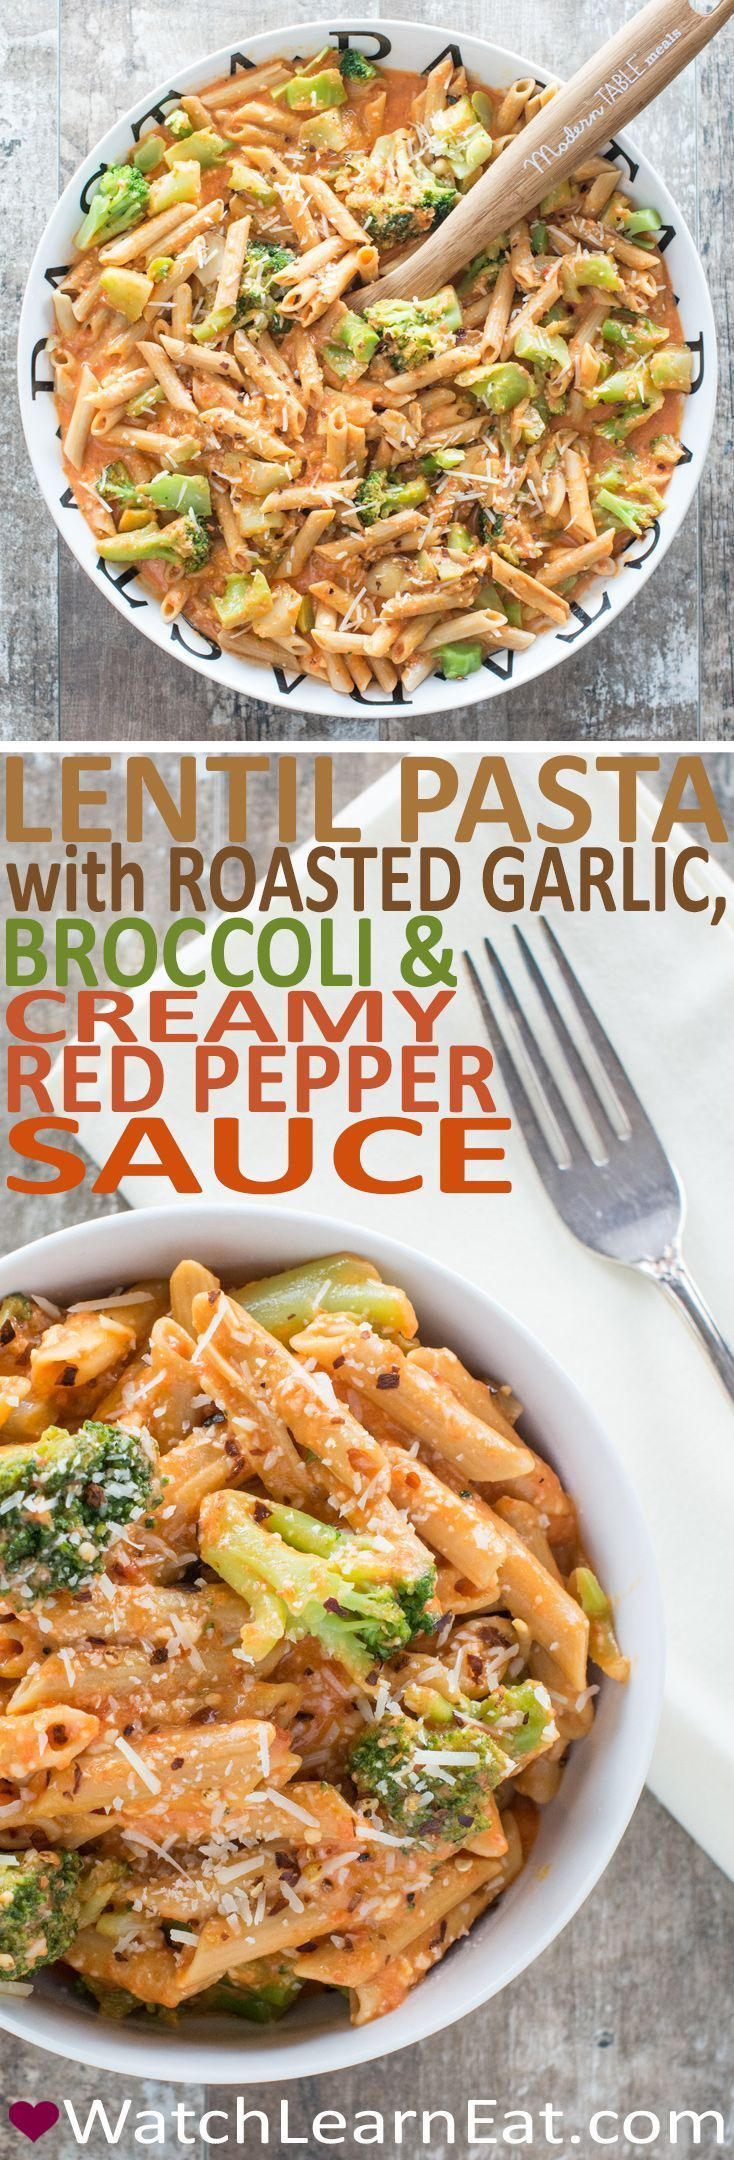 This Lentil Pasta with Roasted Garlic, Broccoli and Creamy Red Pepper Sauce is a delicious and hearty vegetarian meal that also happens to be gluten free.